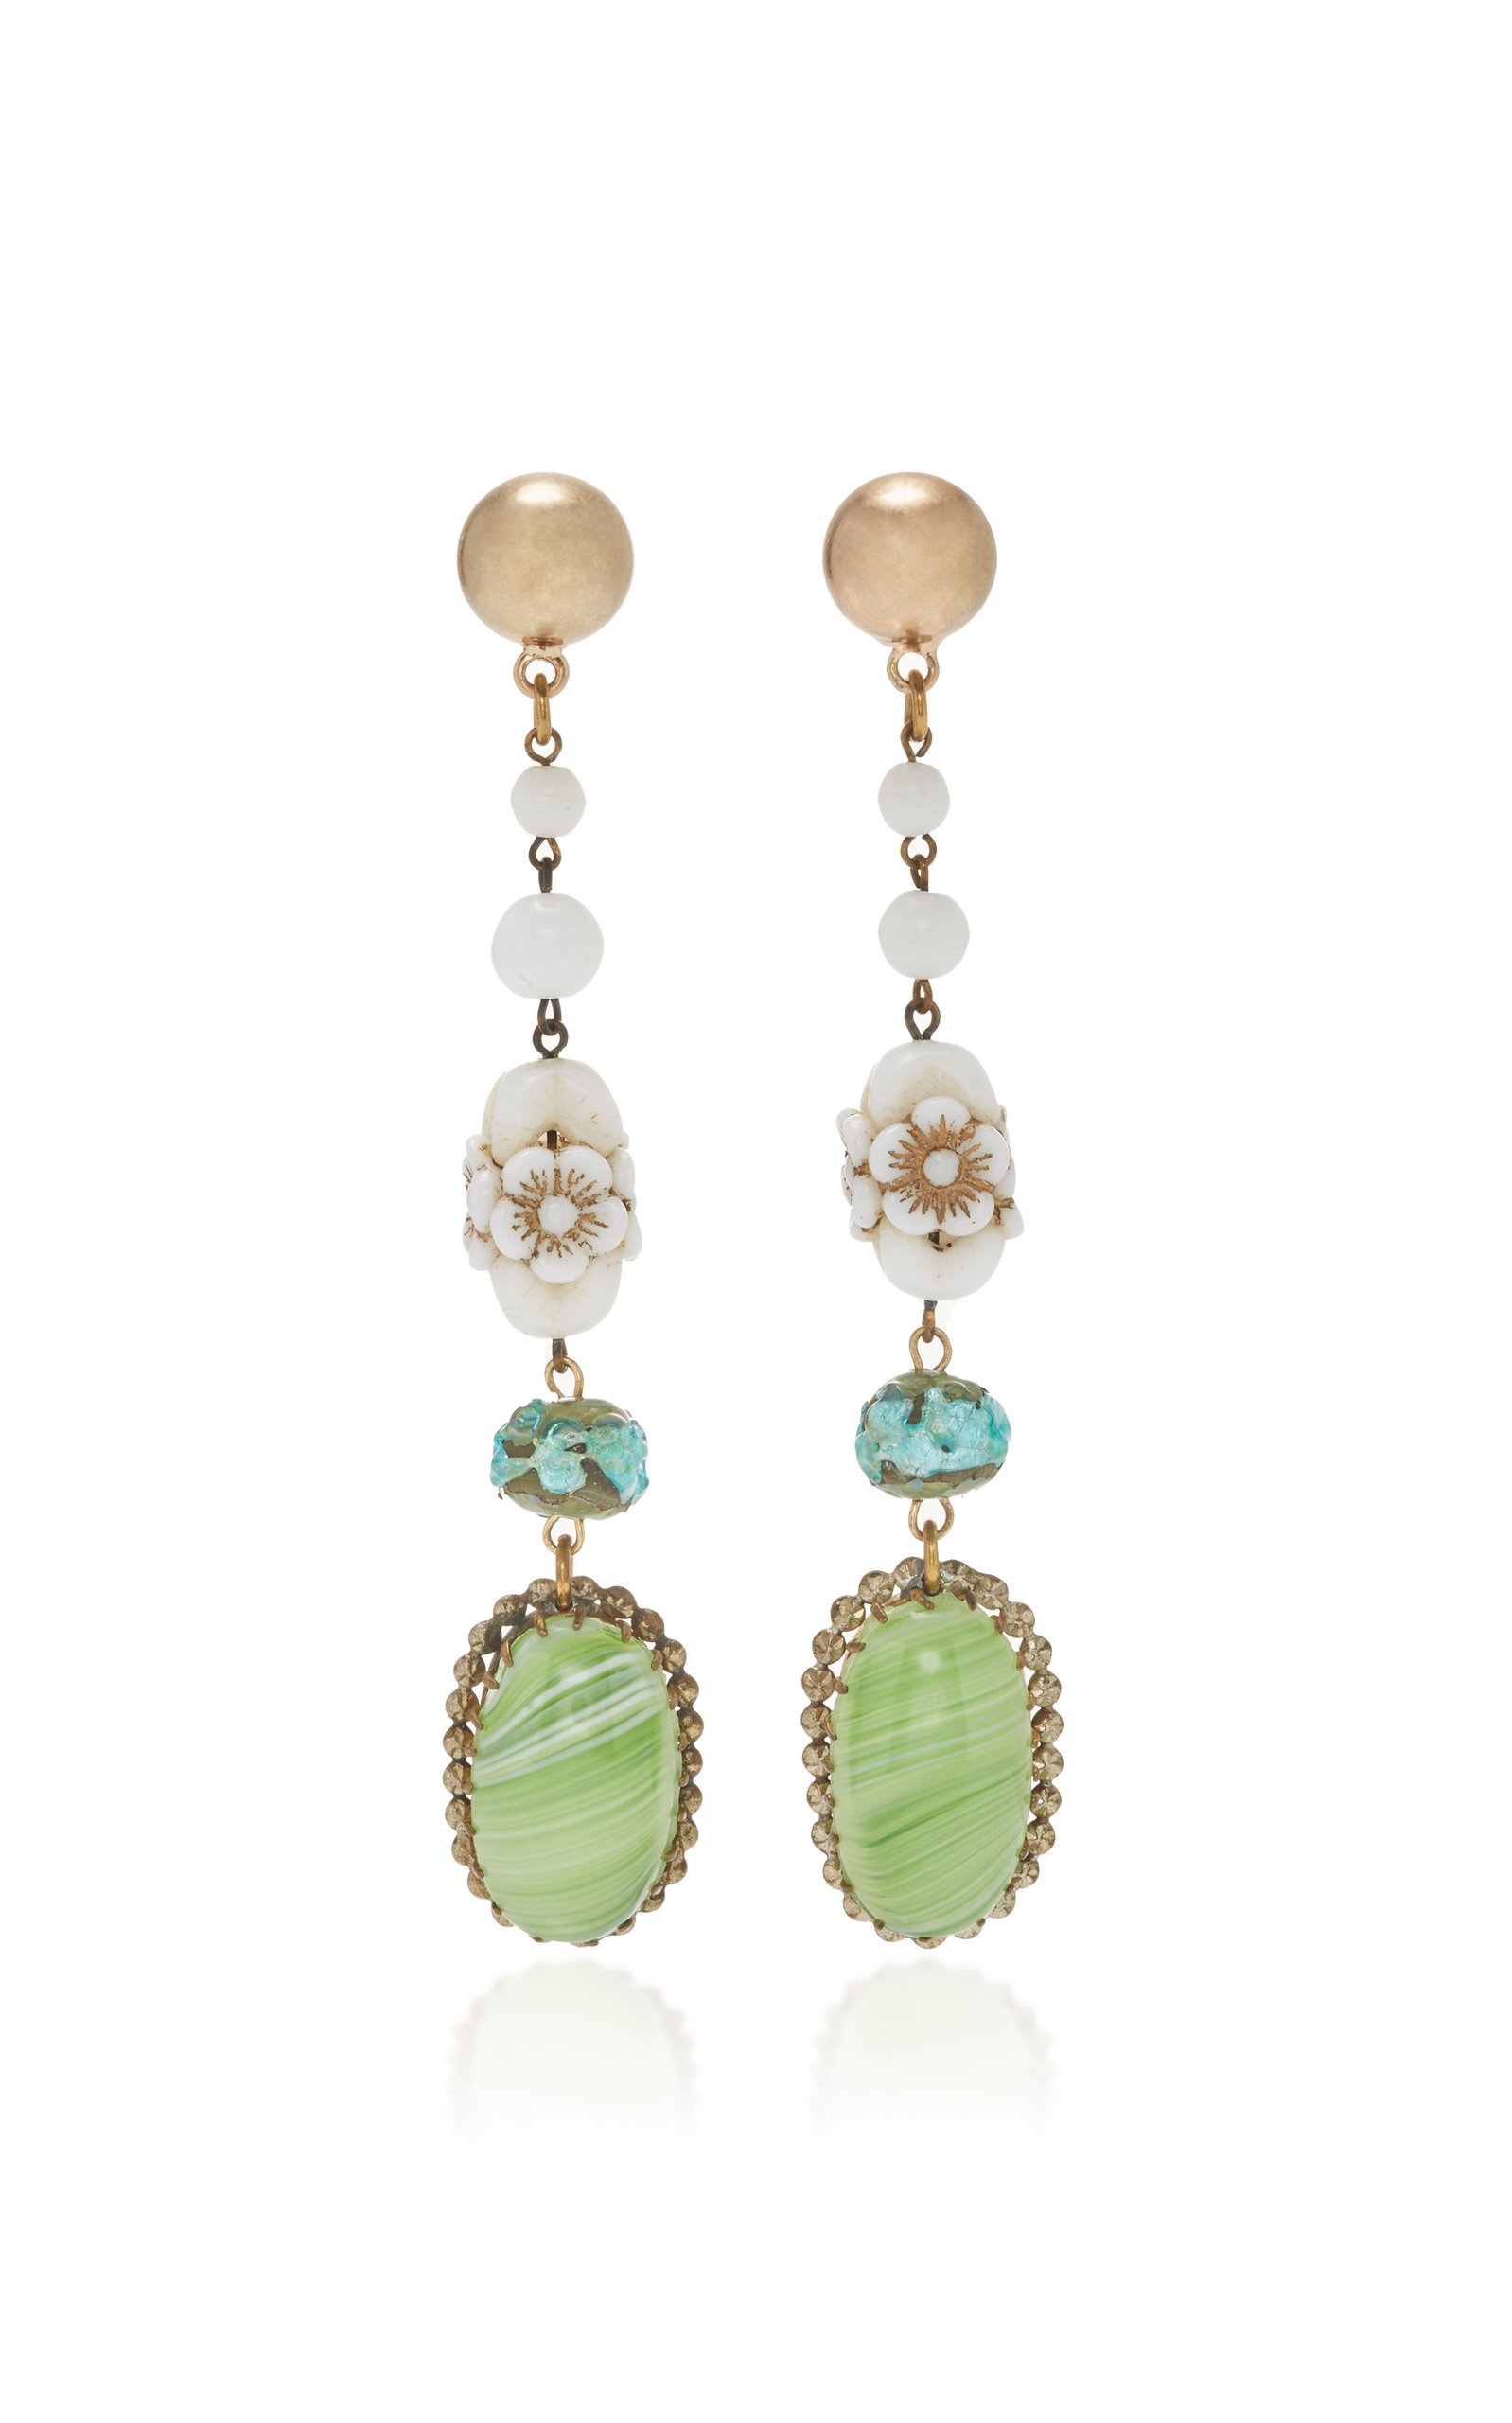 LULU FROST ONE-OF-A-KIND GLASS FLORAL BEAD DROP EARRING